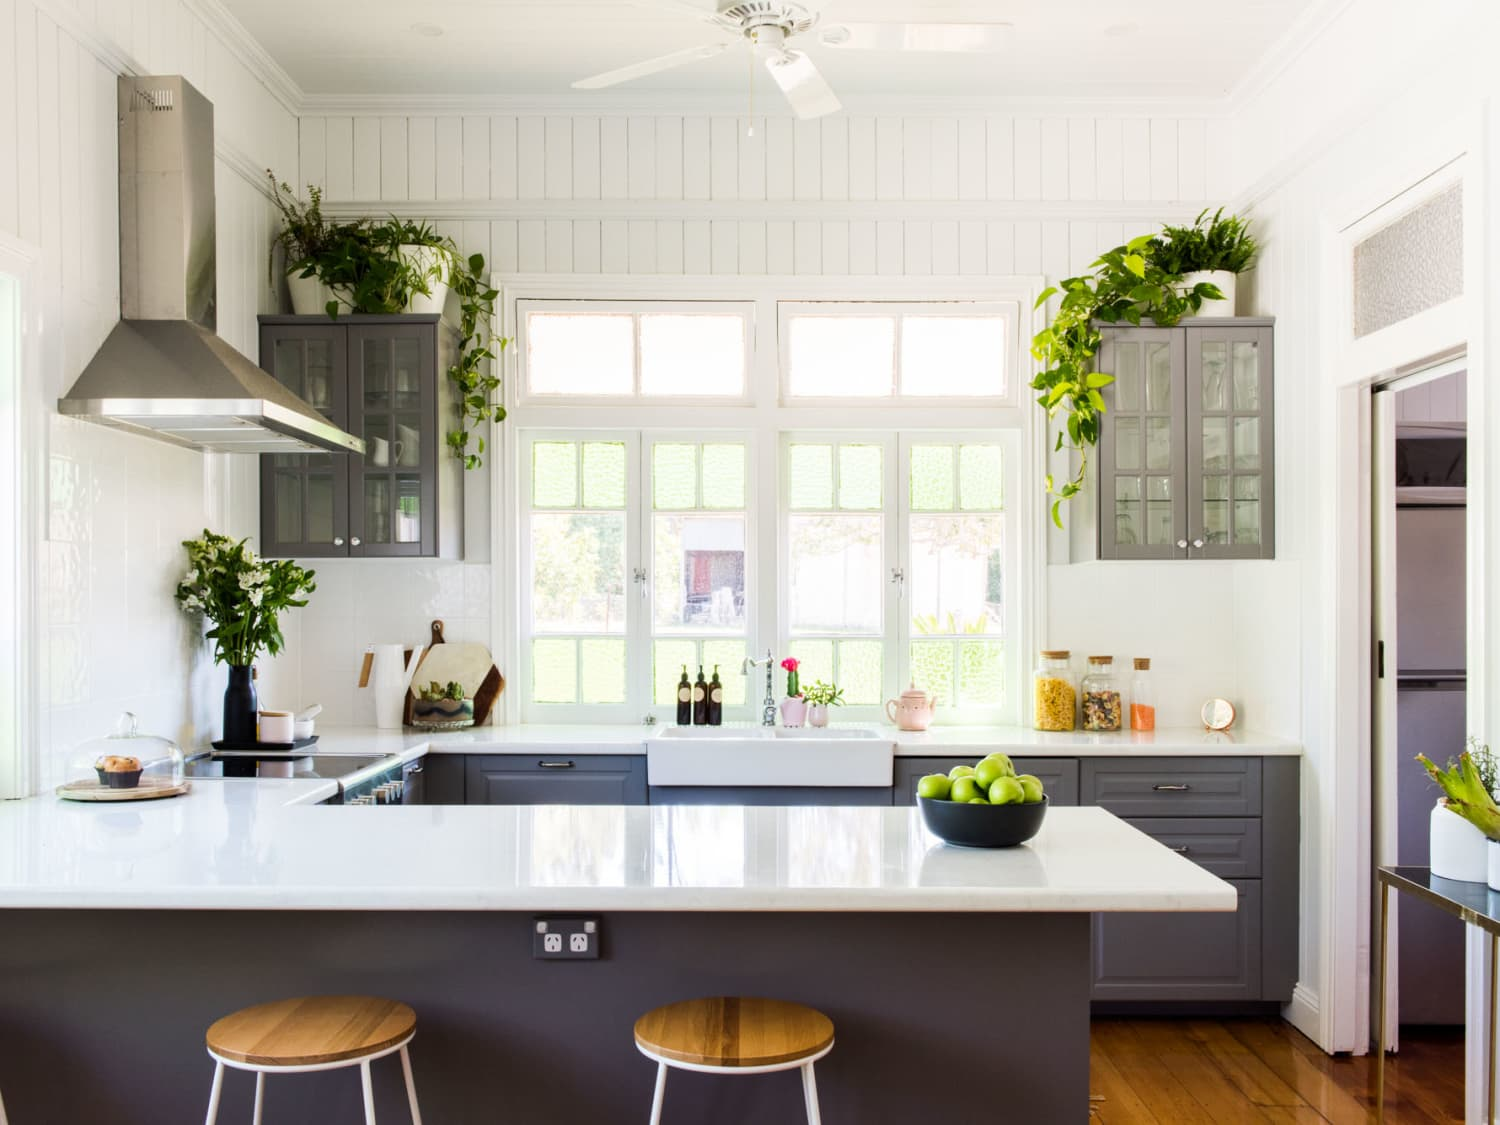 20 Gorgeous Gray Kitchen Ideas How To Use In Kitchens Apartment Therapy